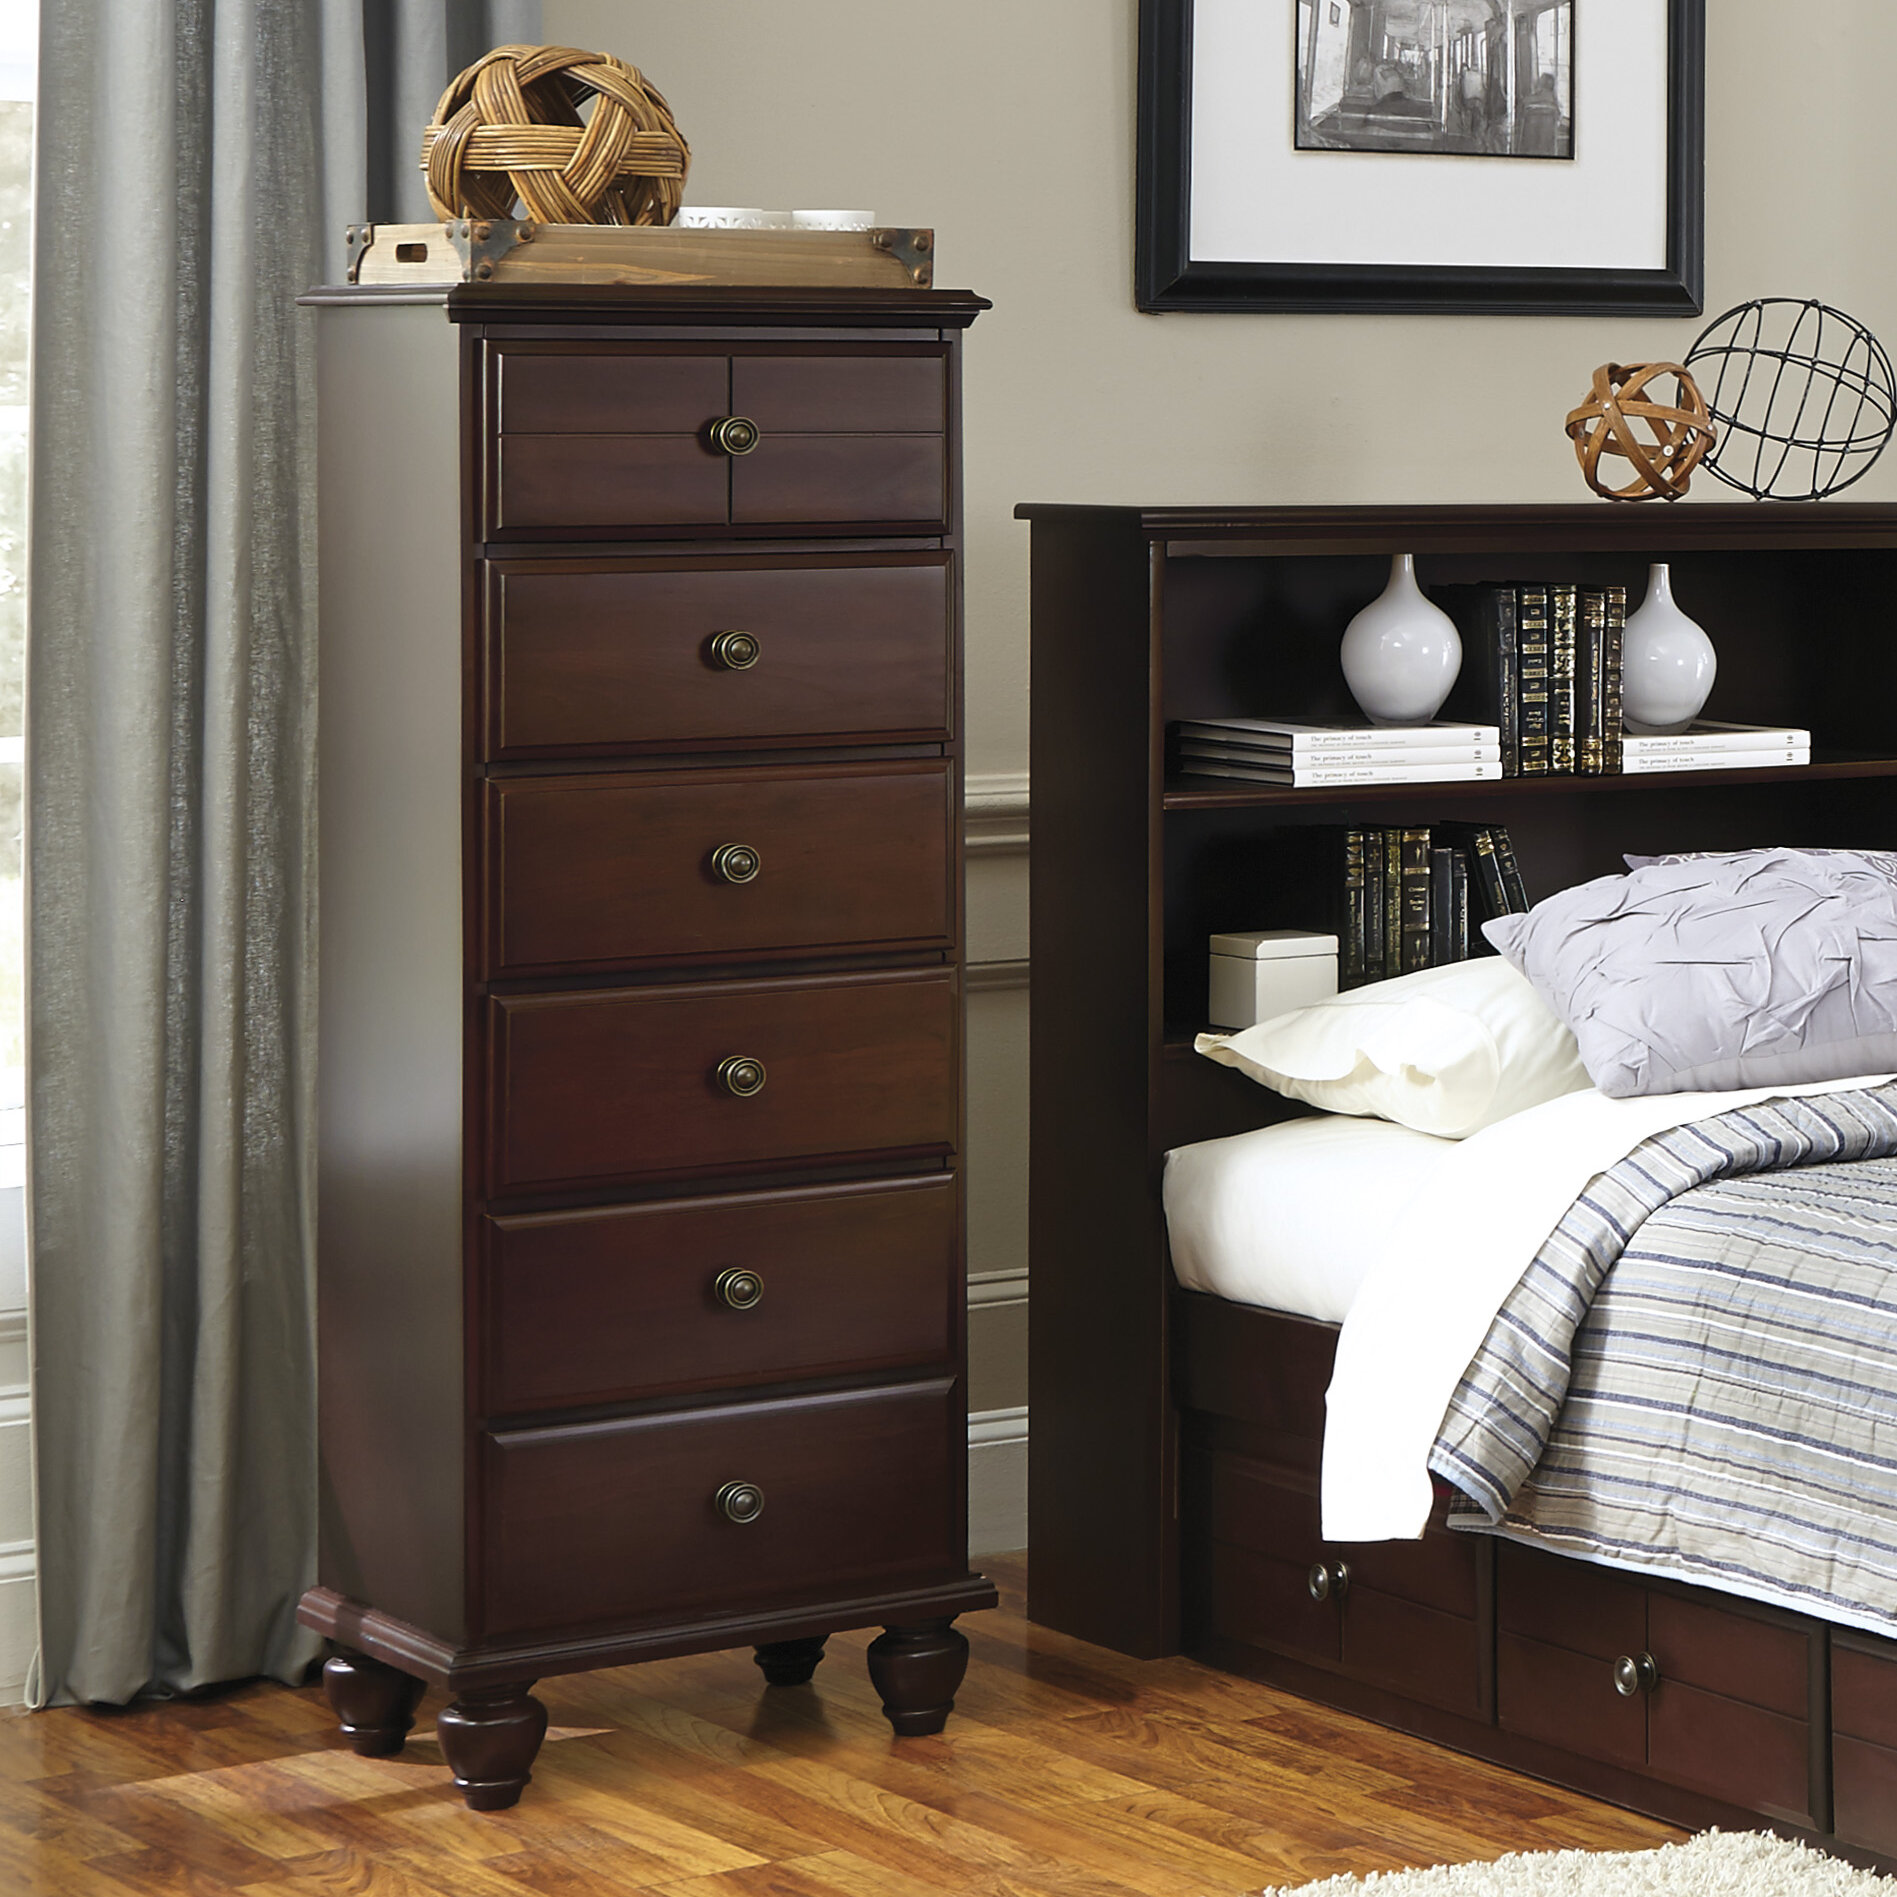 dresser bikinis credenzas tables mistry lost on buffets lingerie dressing cabinets set vipul pinterest drawer pin by dressers